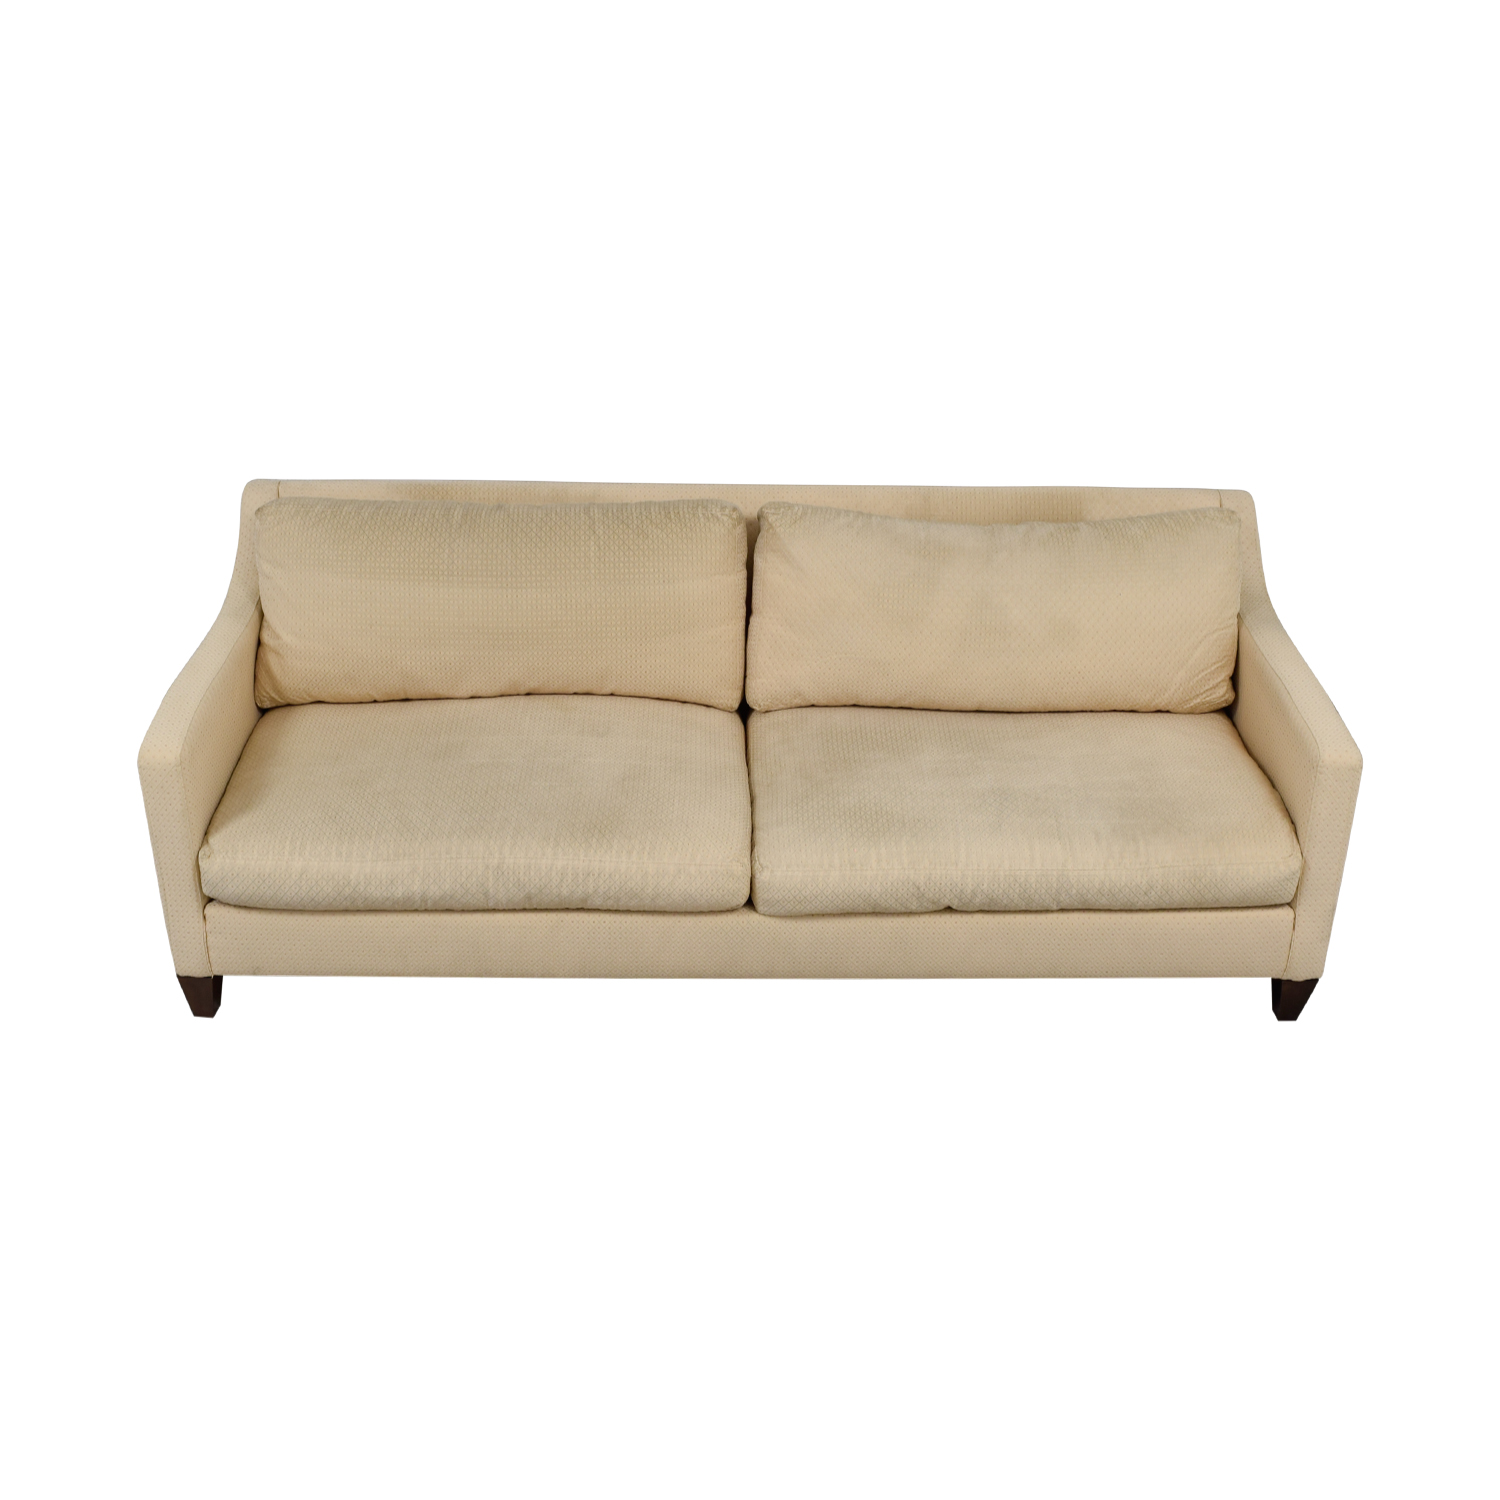 Ethan Allen Beige Two-Cushion Couch / Classic Sofas